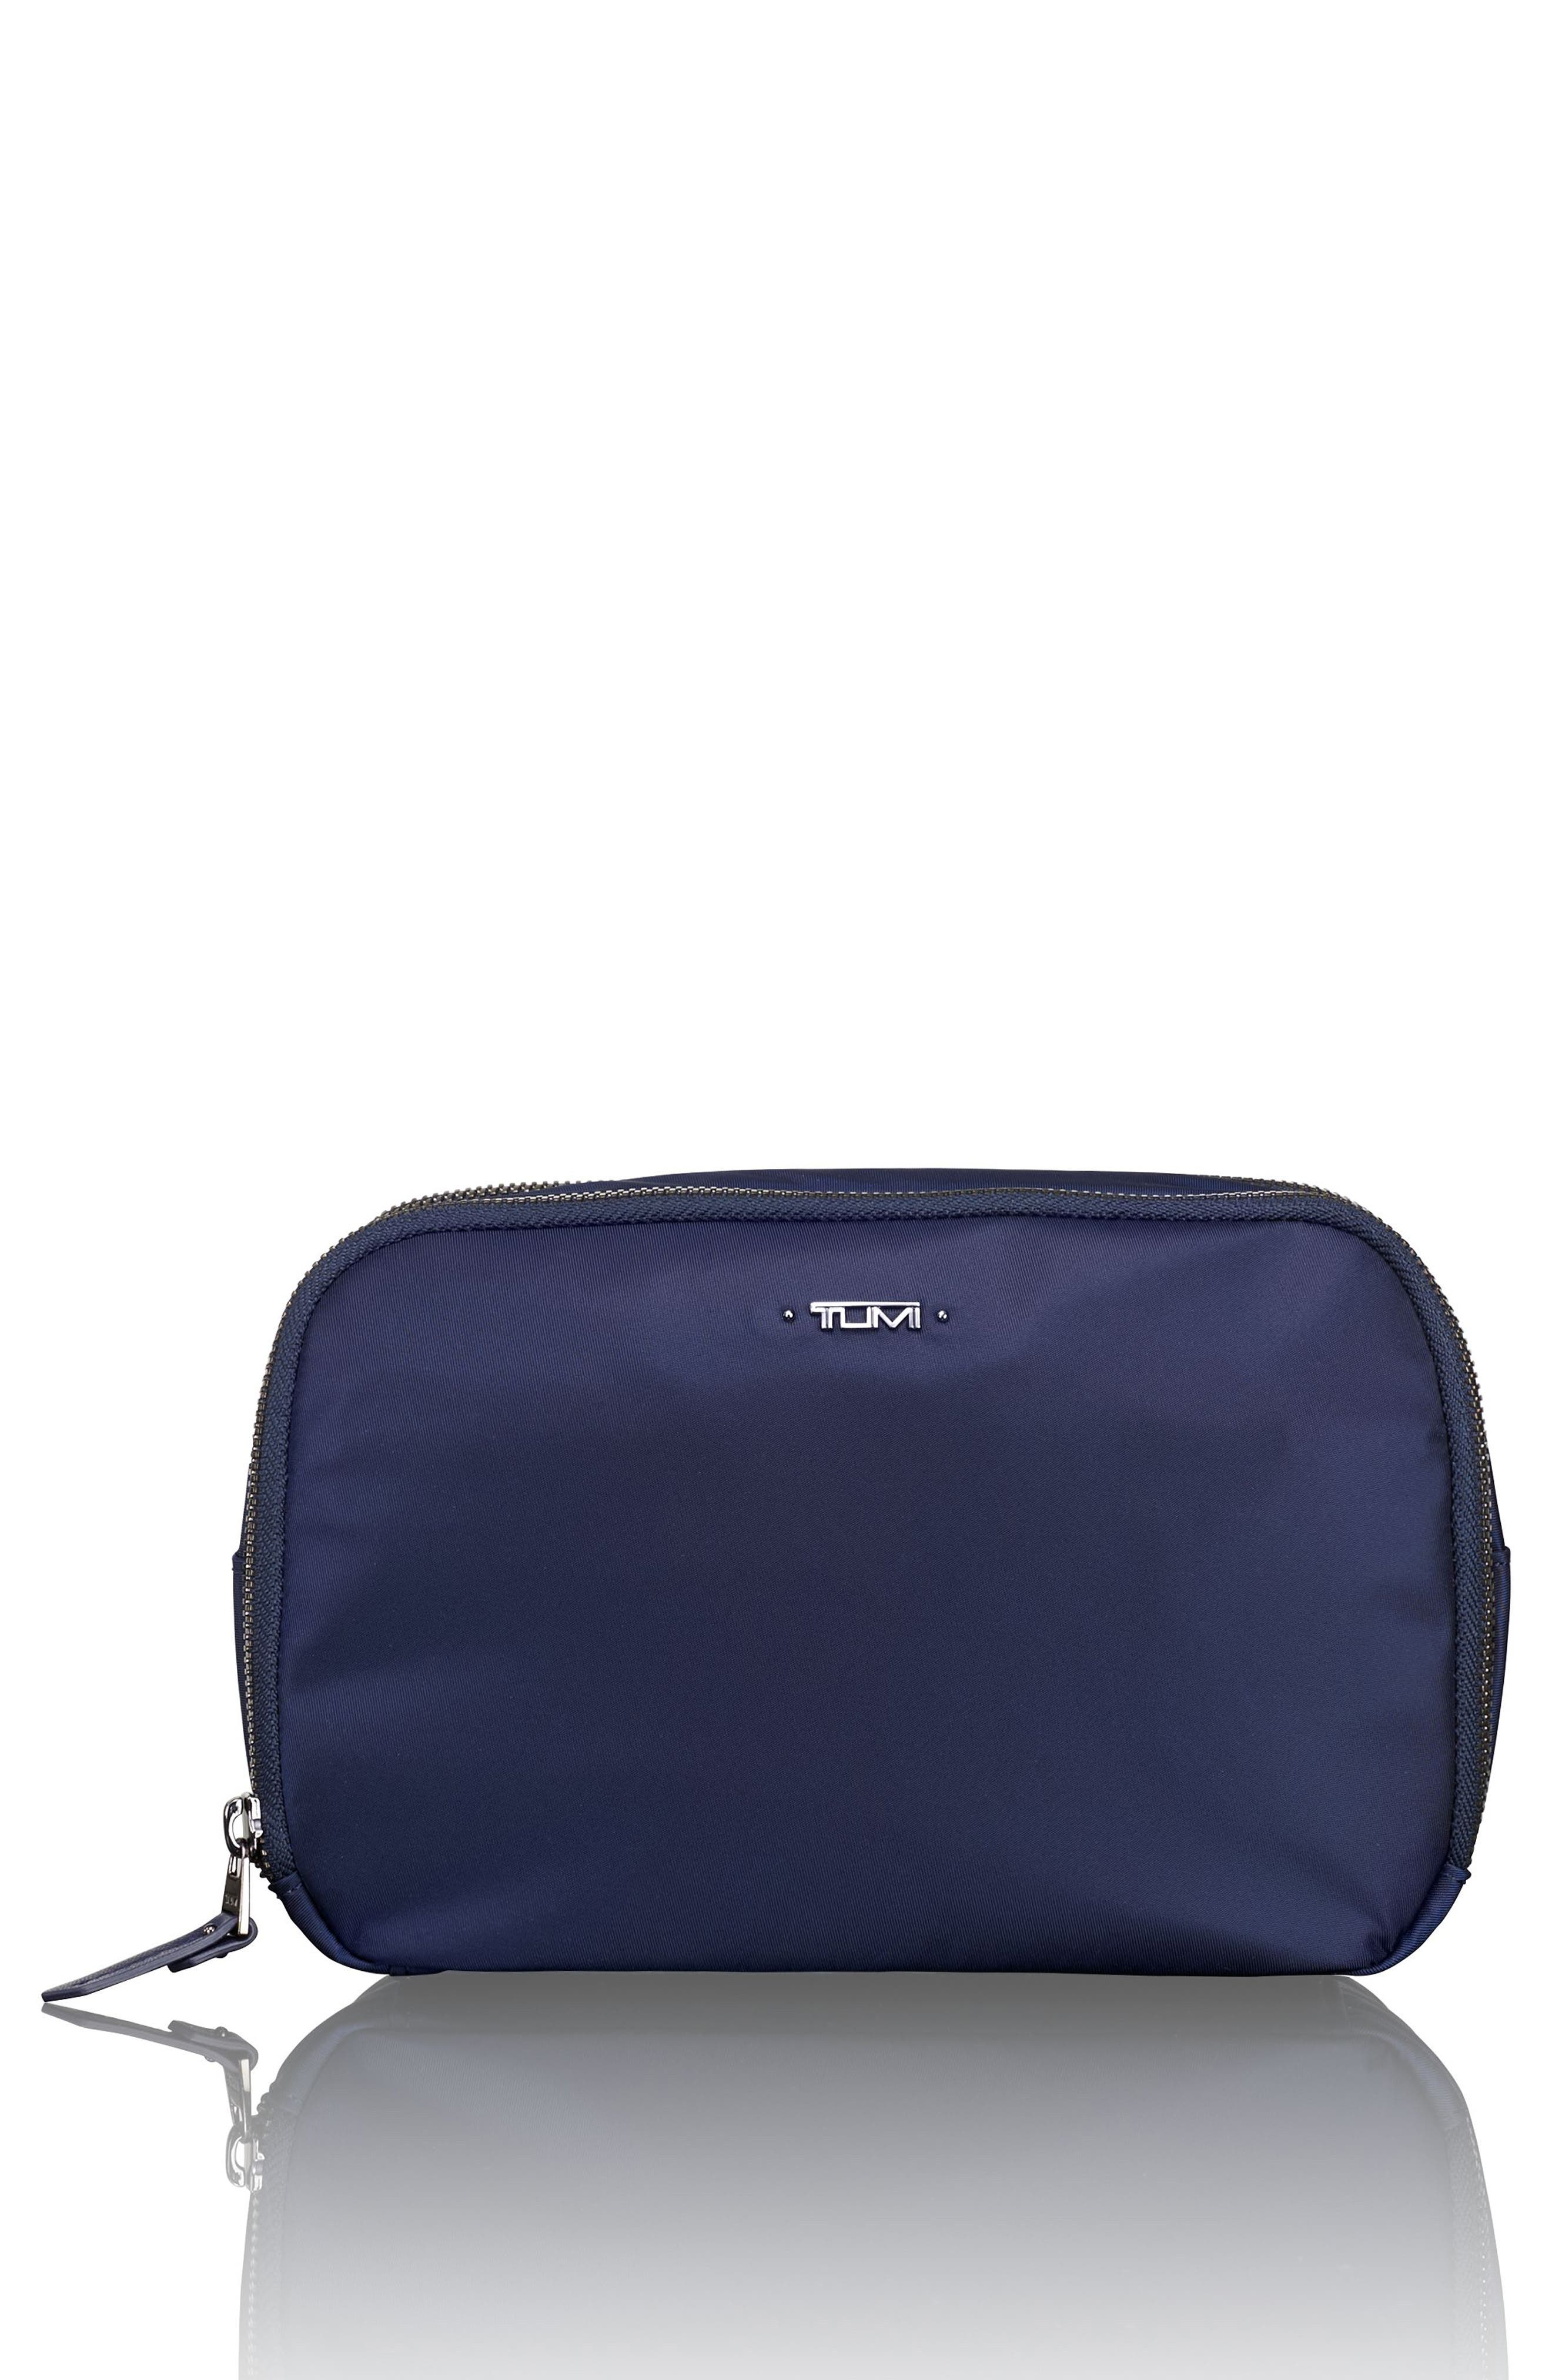 Alternate Image 1 Selected - Tumi Lesley Cosmetics Case